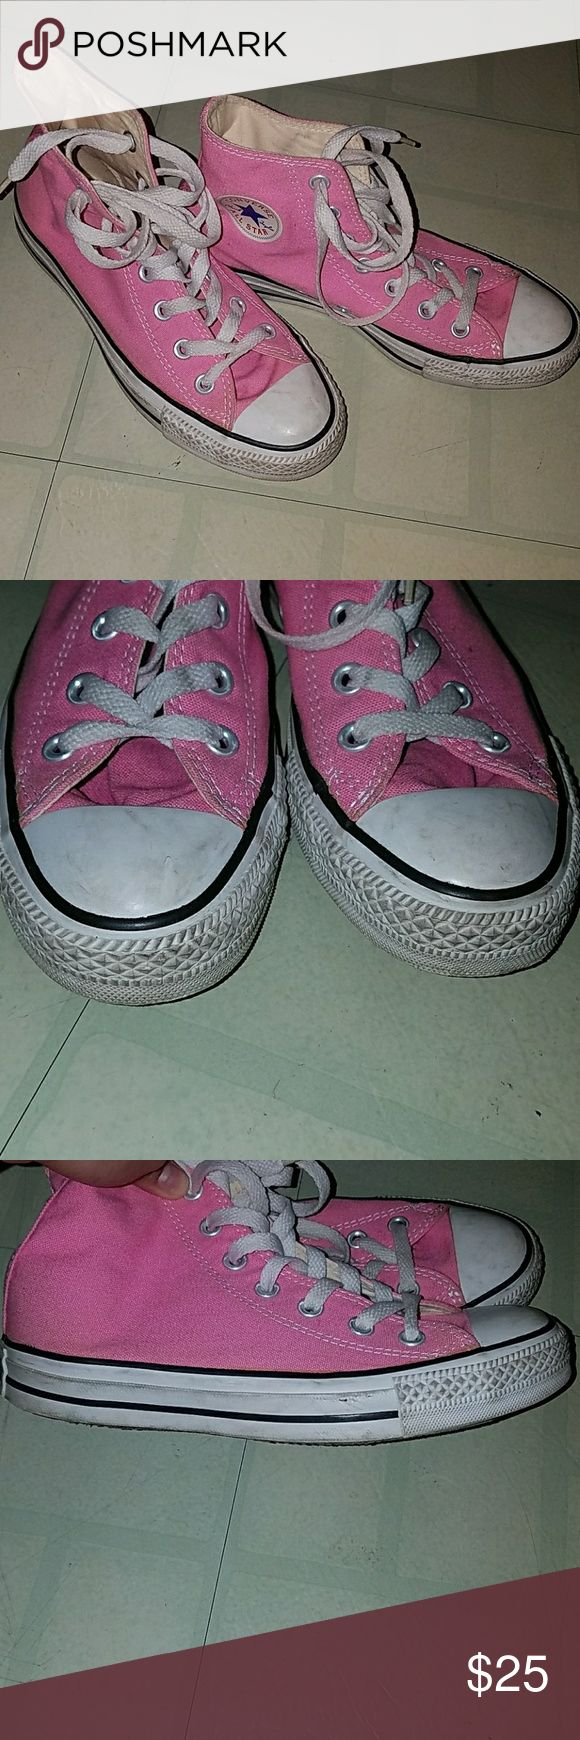 High top converse Pink high top converse. In very good condition, the front and sides are a bit dirty but nothing crazy. They were hardly worn only indoors as seen from the picture showing the bottom of the shoes are very clean. Doesn't come with original box but can send in another converse box.   Offers welcome but please no lowballs. Converse Shoes